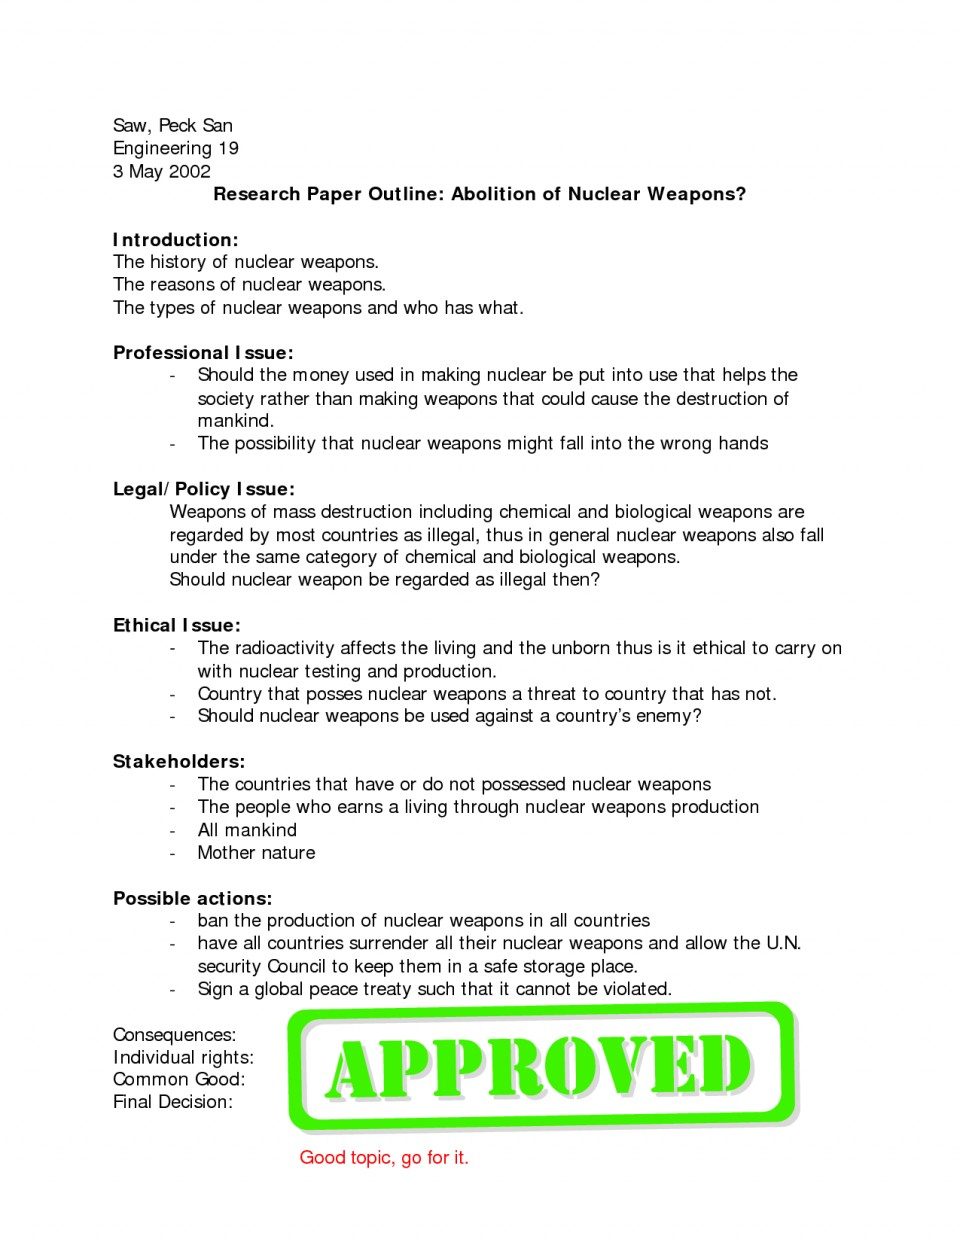 003 Argumentative Research Paper Topics History Online Writing Lab Term Outline Essay L Surprising American 960